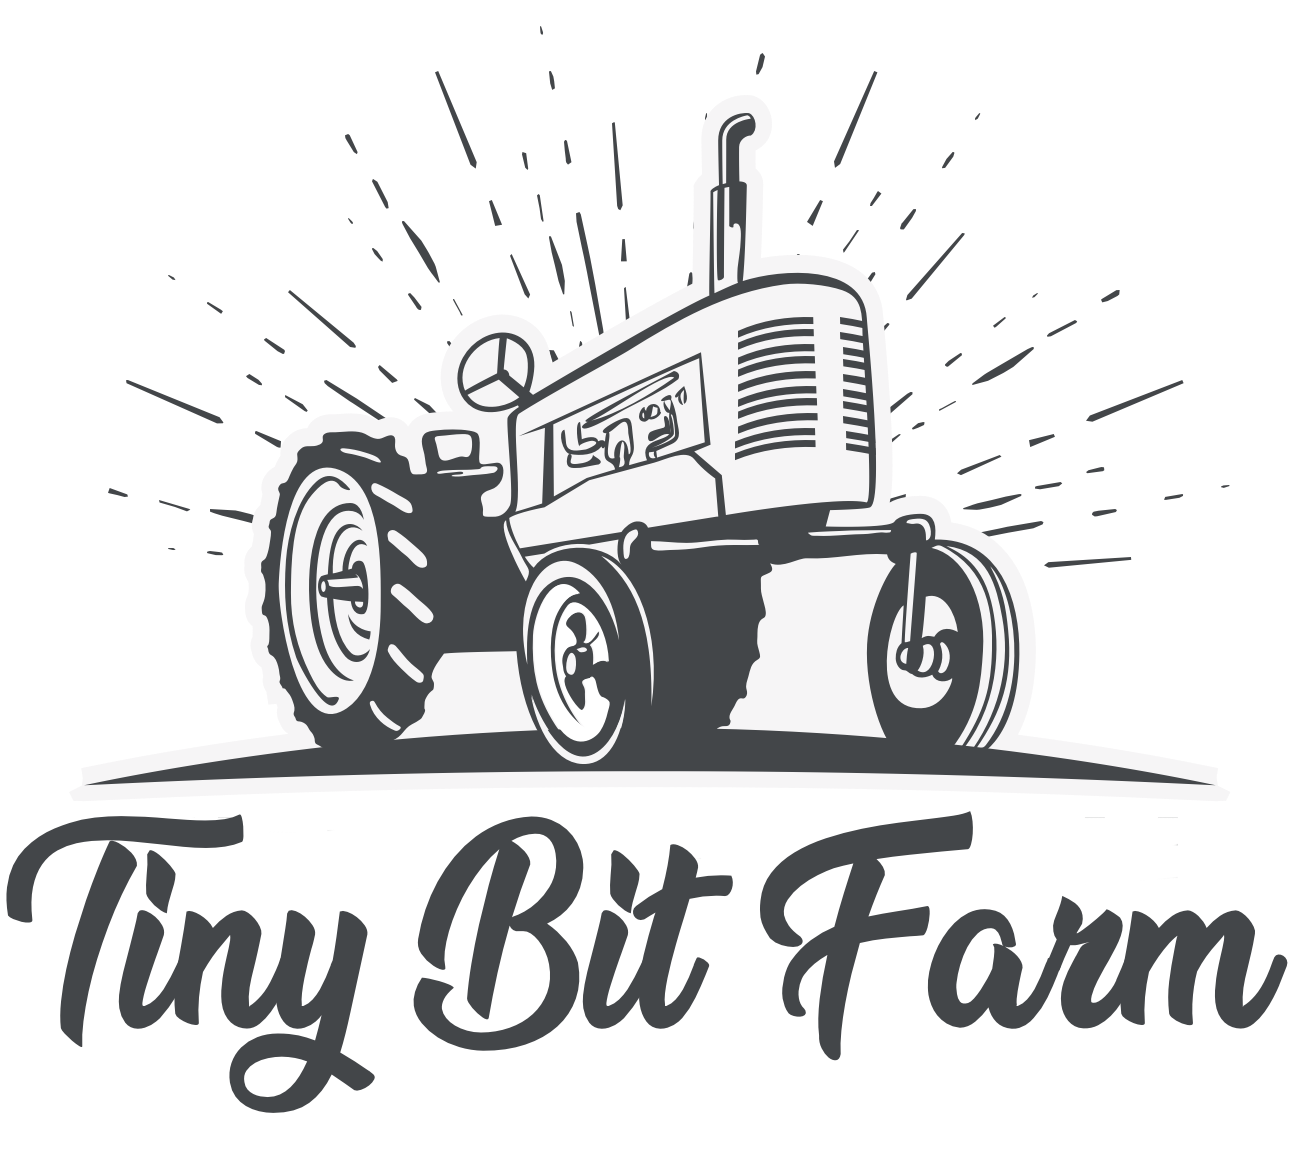 Tiny Bit Farm Logo